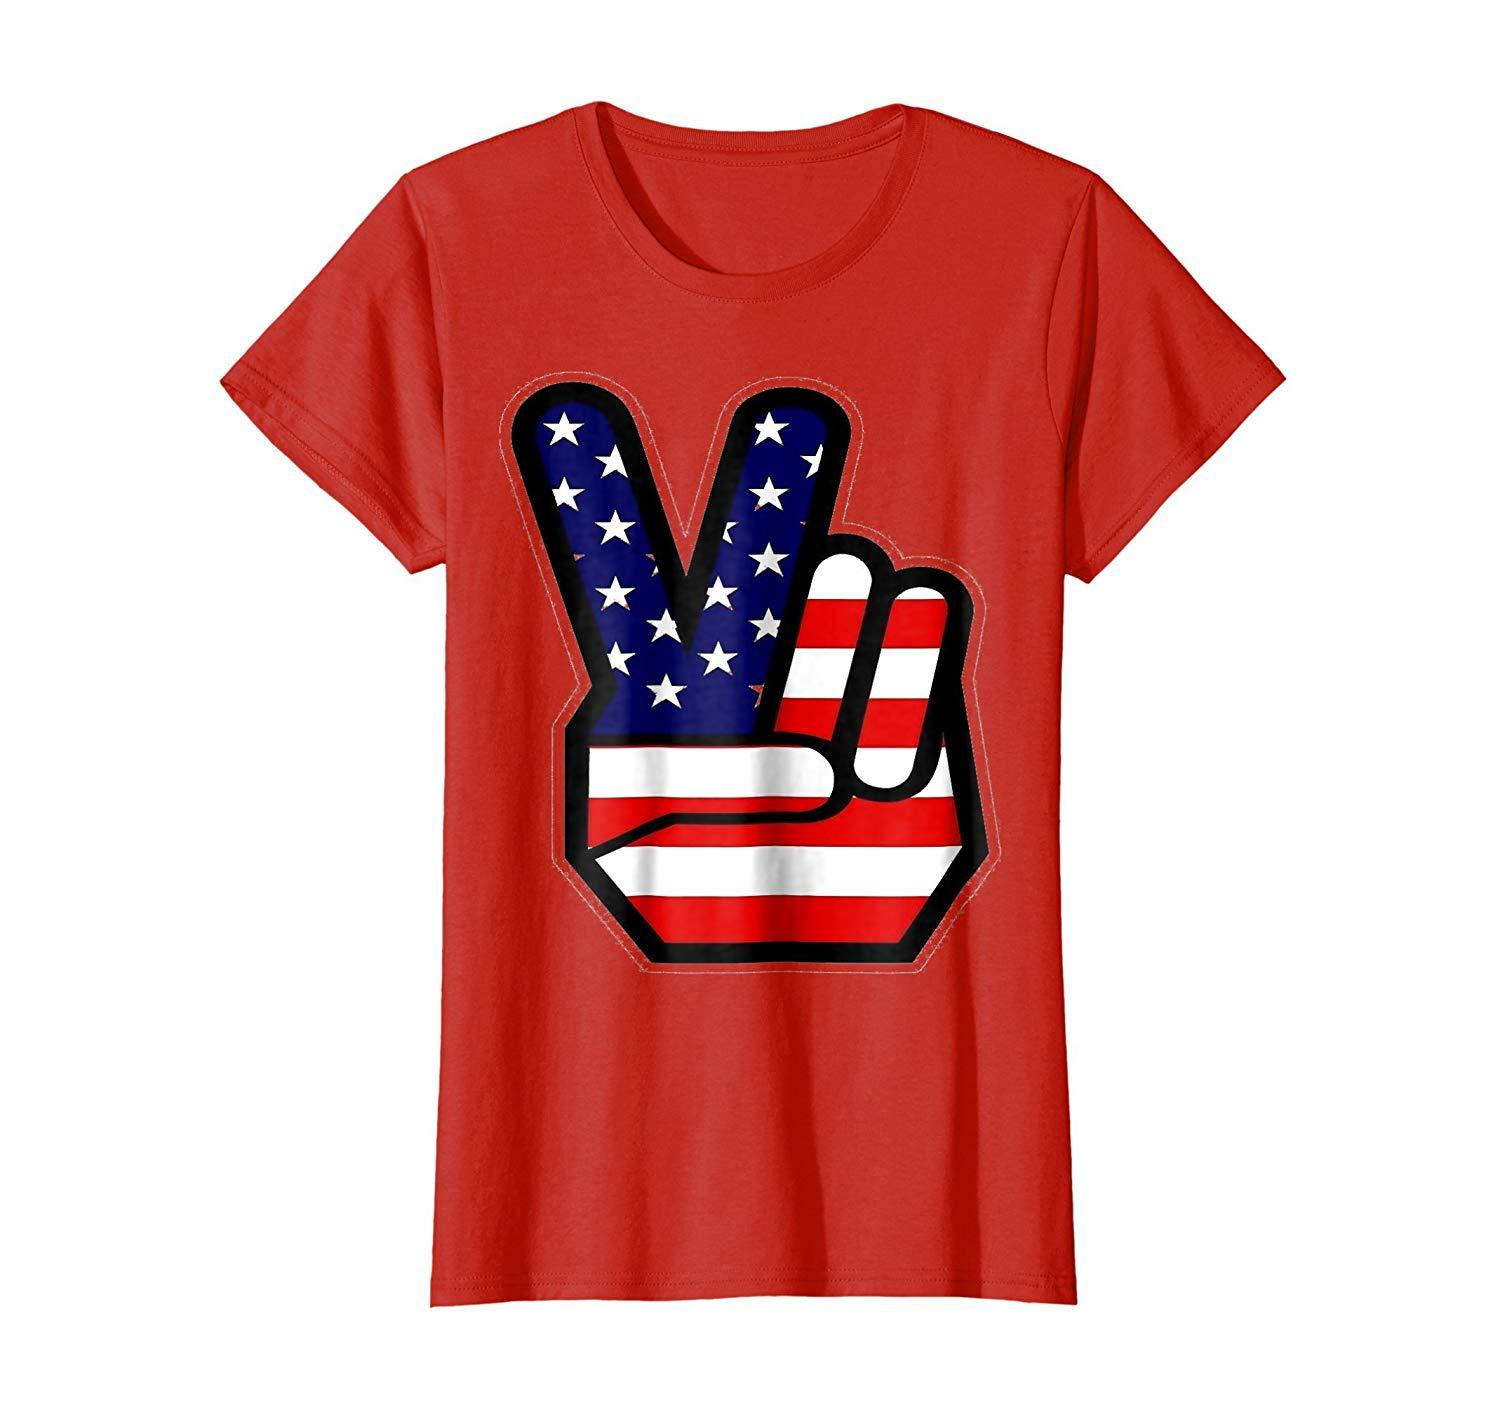 Funny Shirt - 4th of July Shirt Peace Sign Hand USA American Flag Kids Wowen